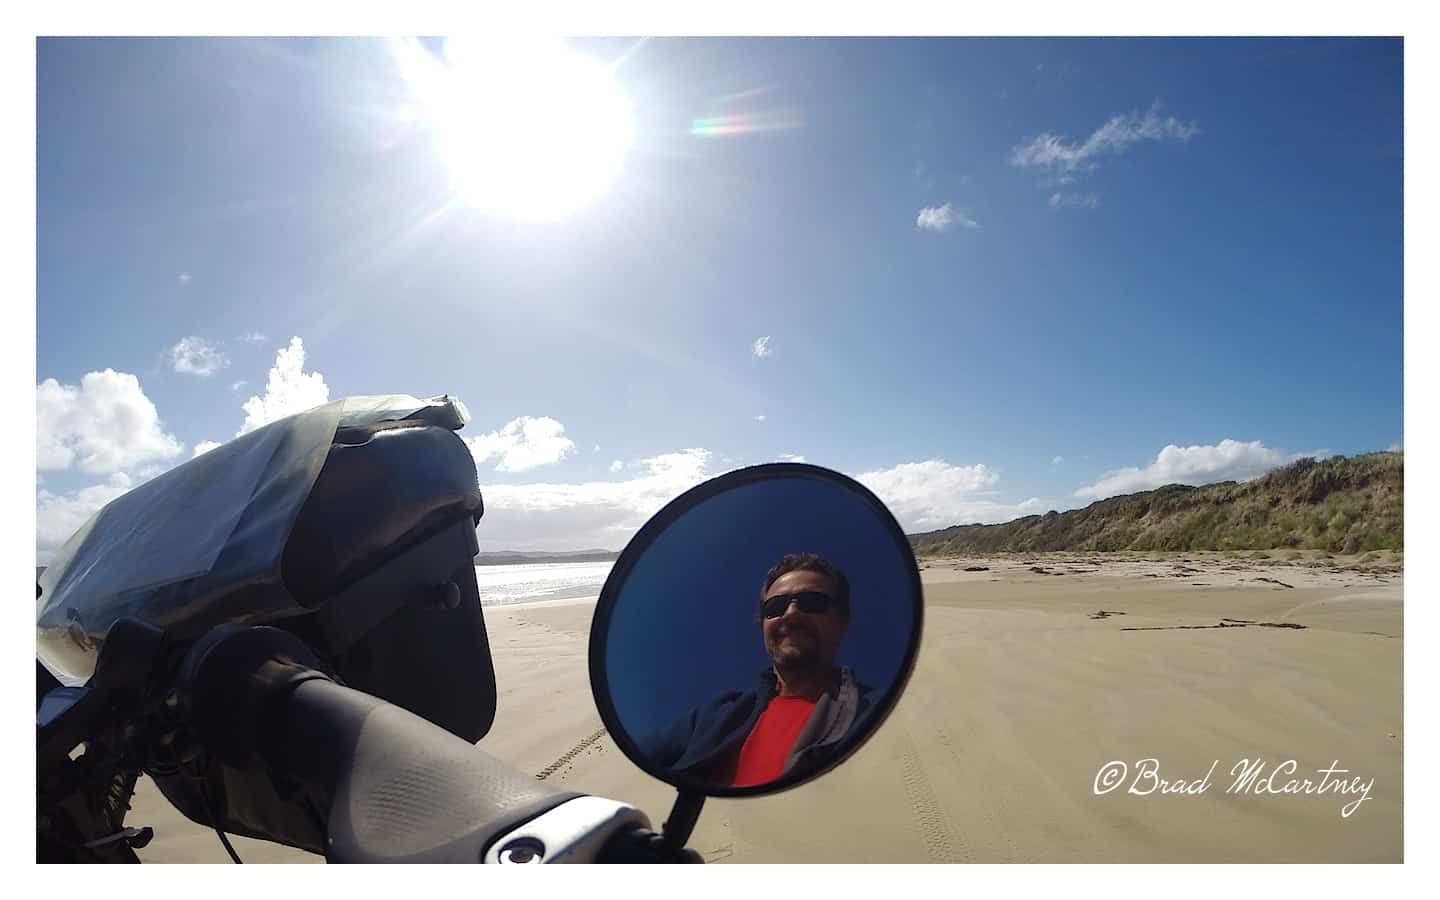 Cycling Bruny Island on the beach